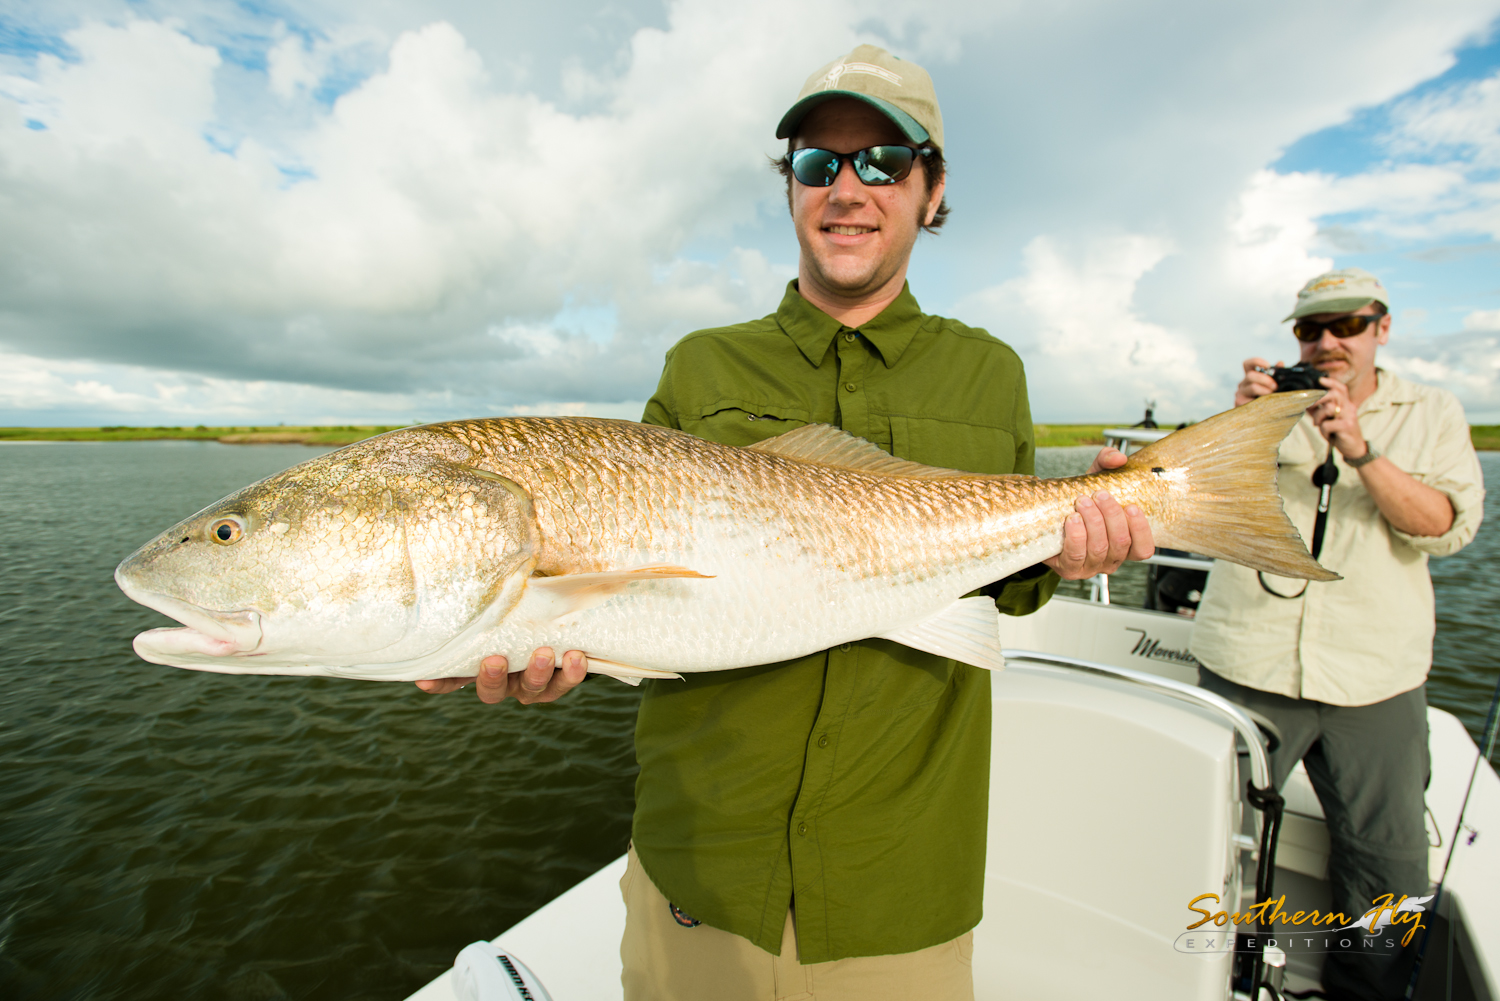 Fly fishing for redfish in Louisiana with Brandon Keck and Southern Fly Expeditions